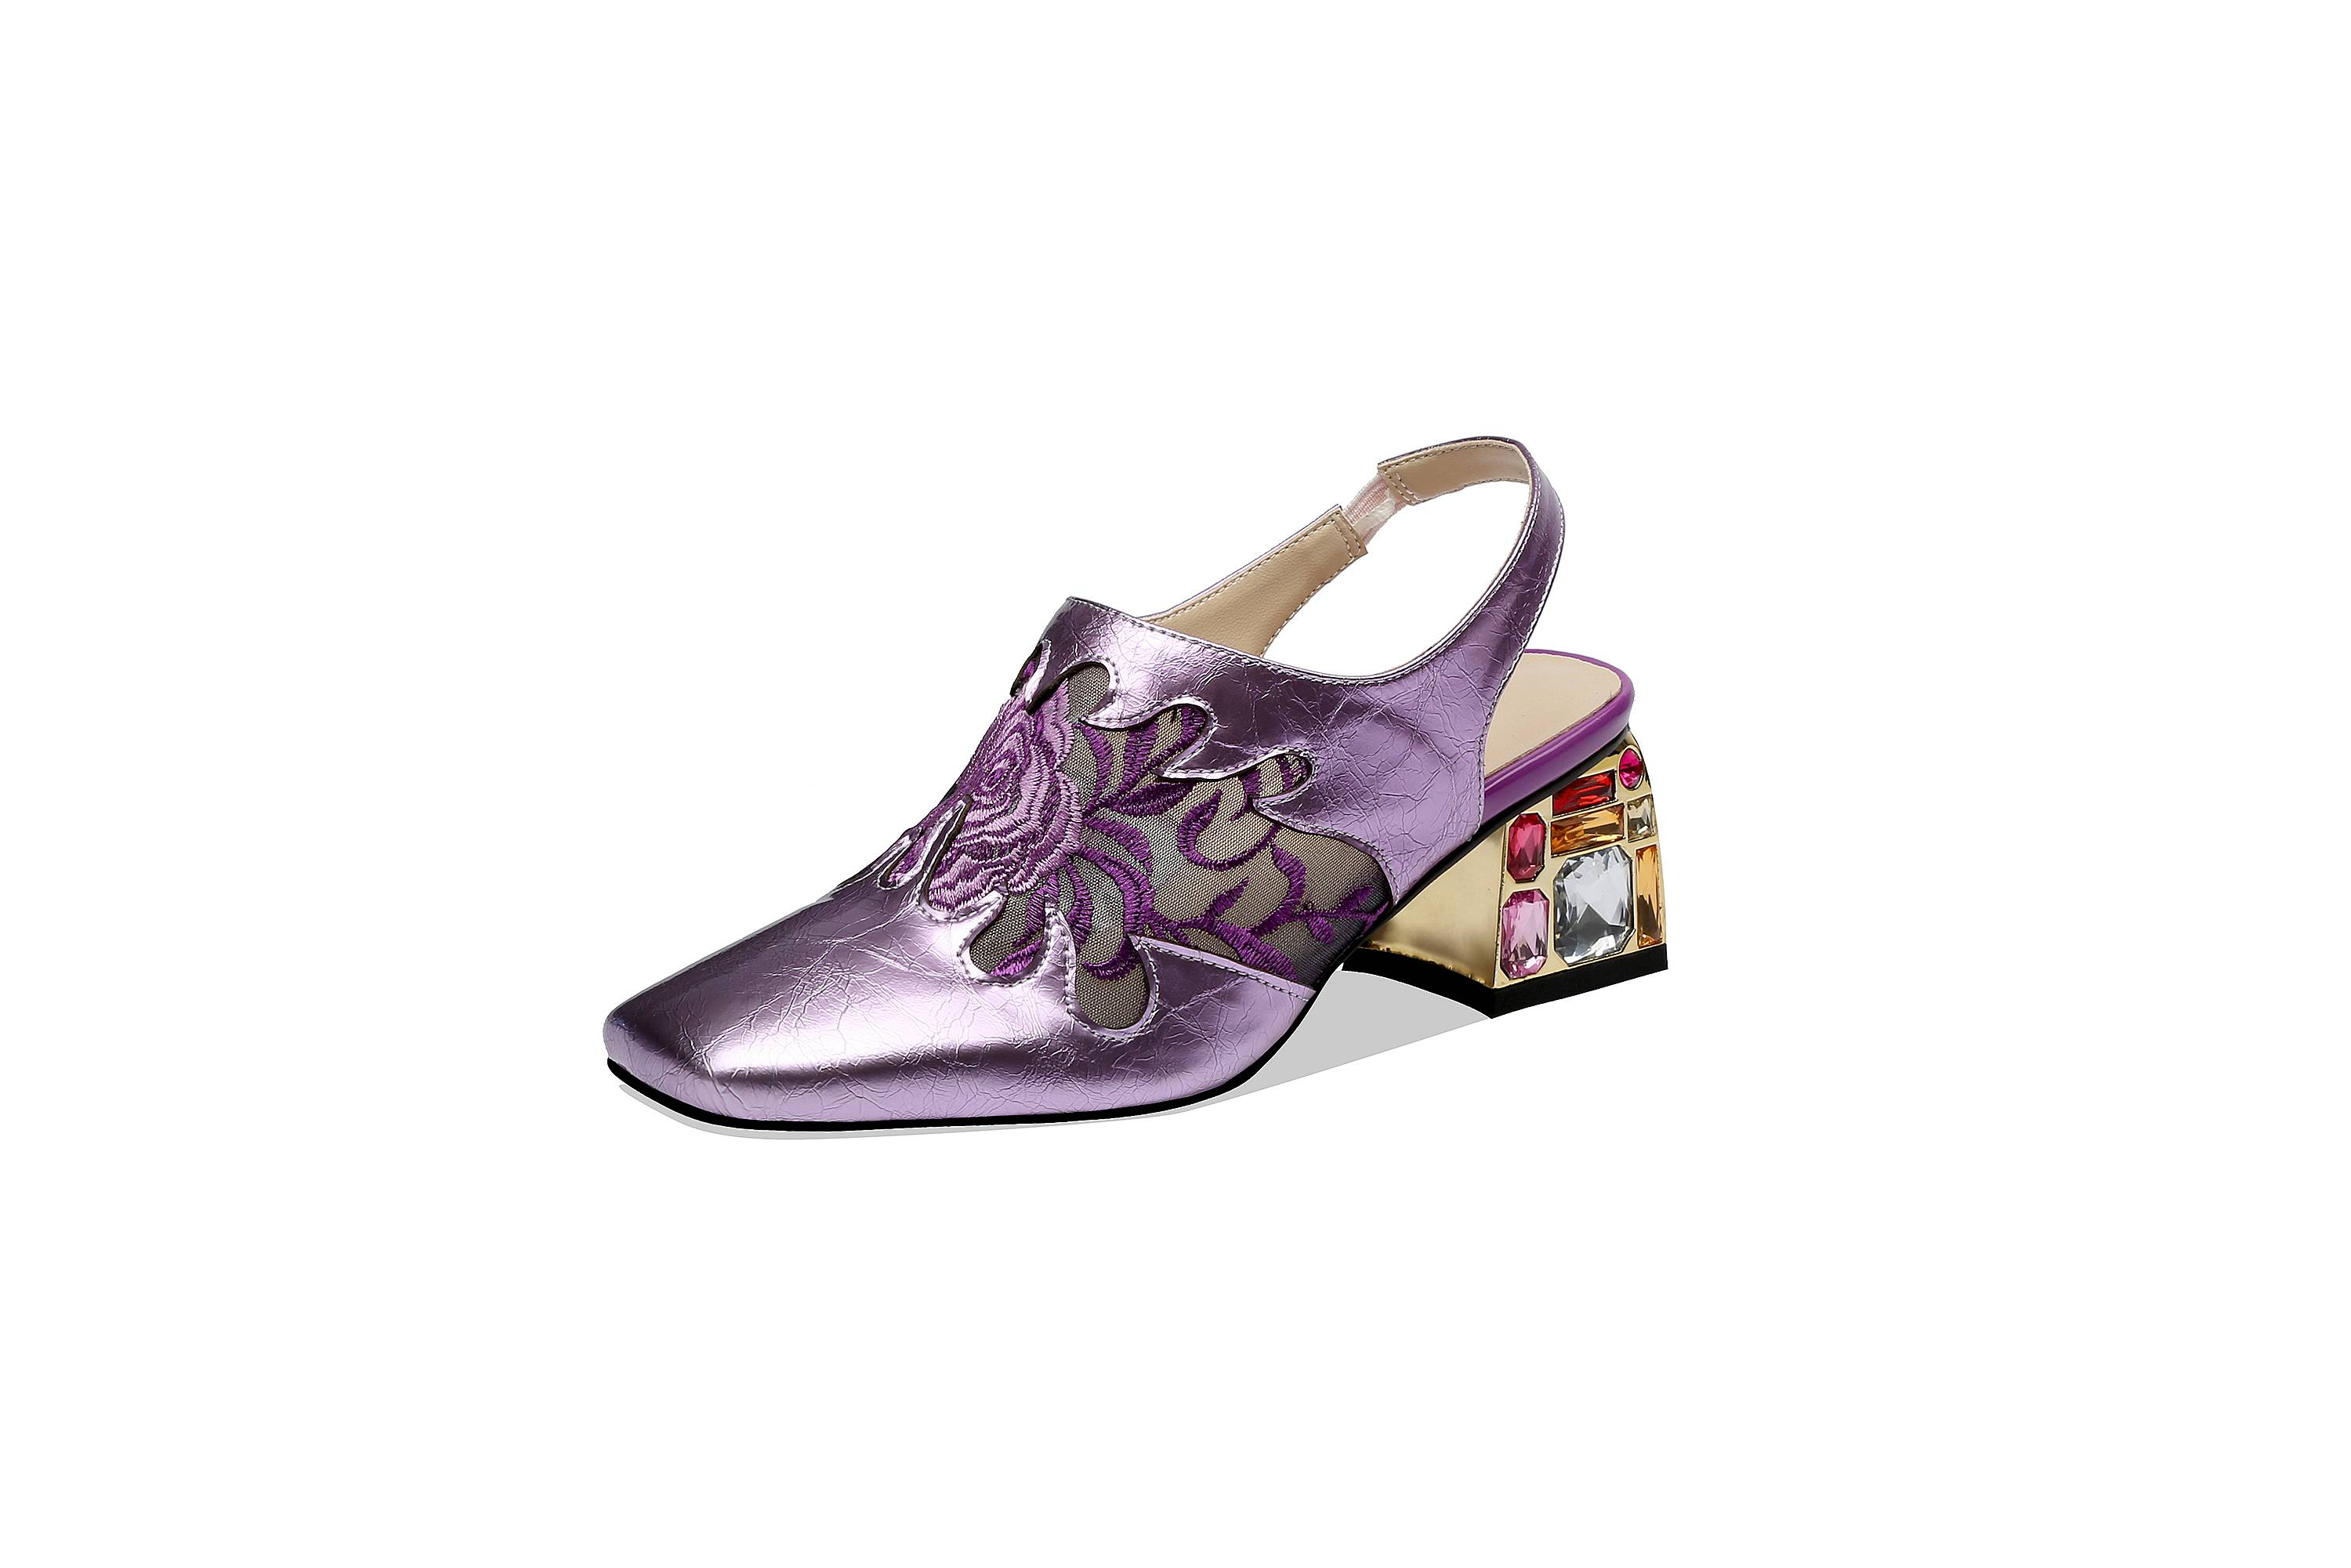 Large Size Mixed Colors Natural Leather Flower Embroidery Slip On Women Pumps Colorful Crystals Decoration Slingback Shoes L10